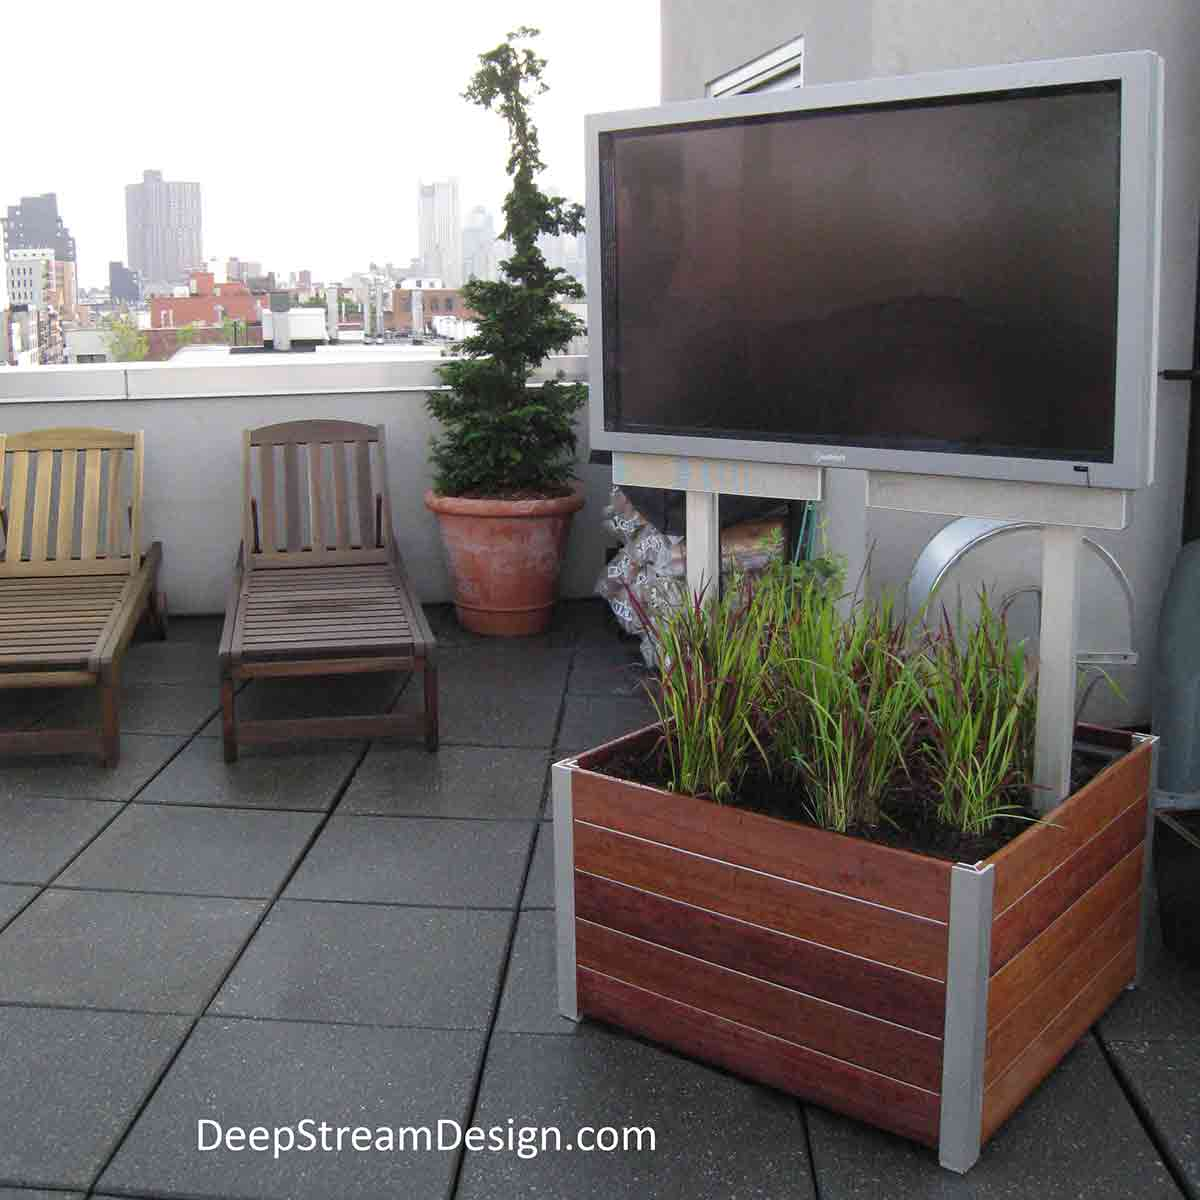 A movable commercial Large Wood Garden Planter on Wheels also holds a 65-inch outdoor TV on an urban roof deck seating area.